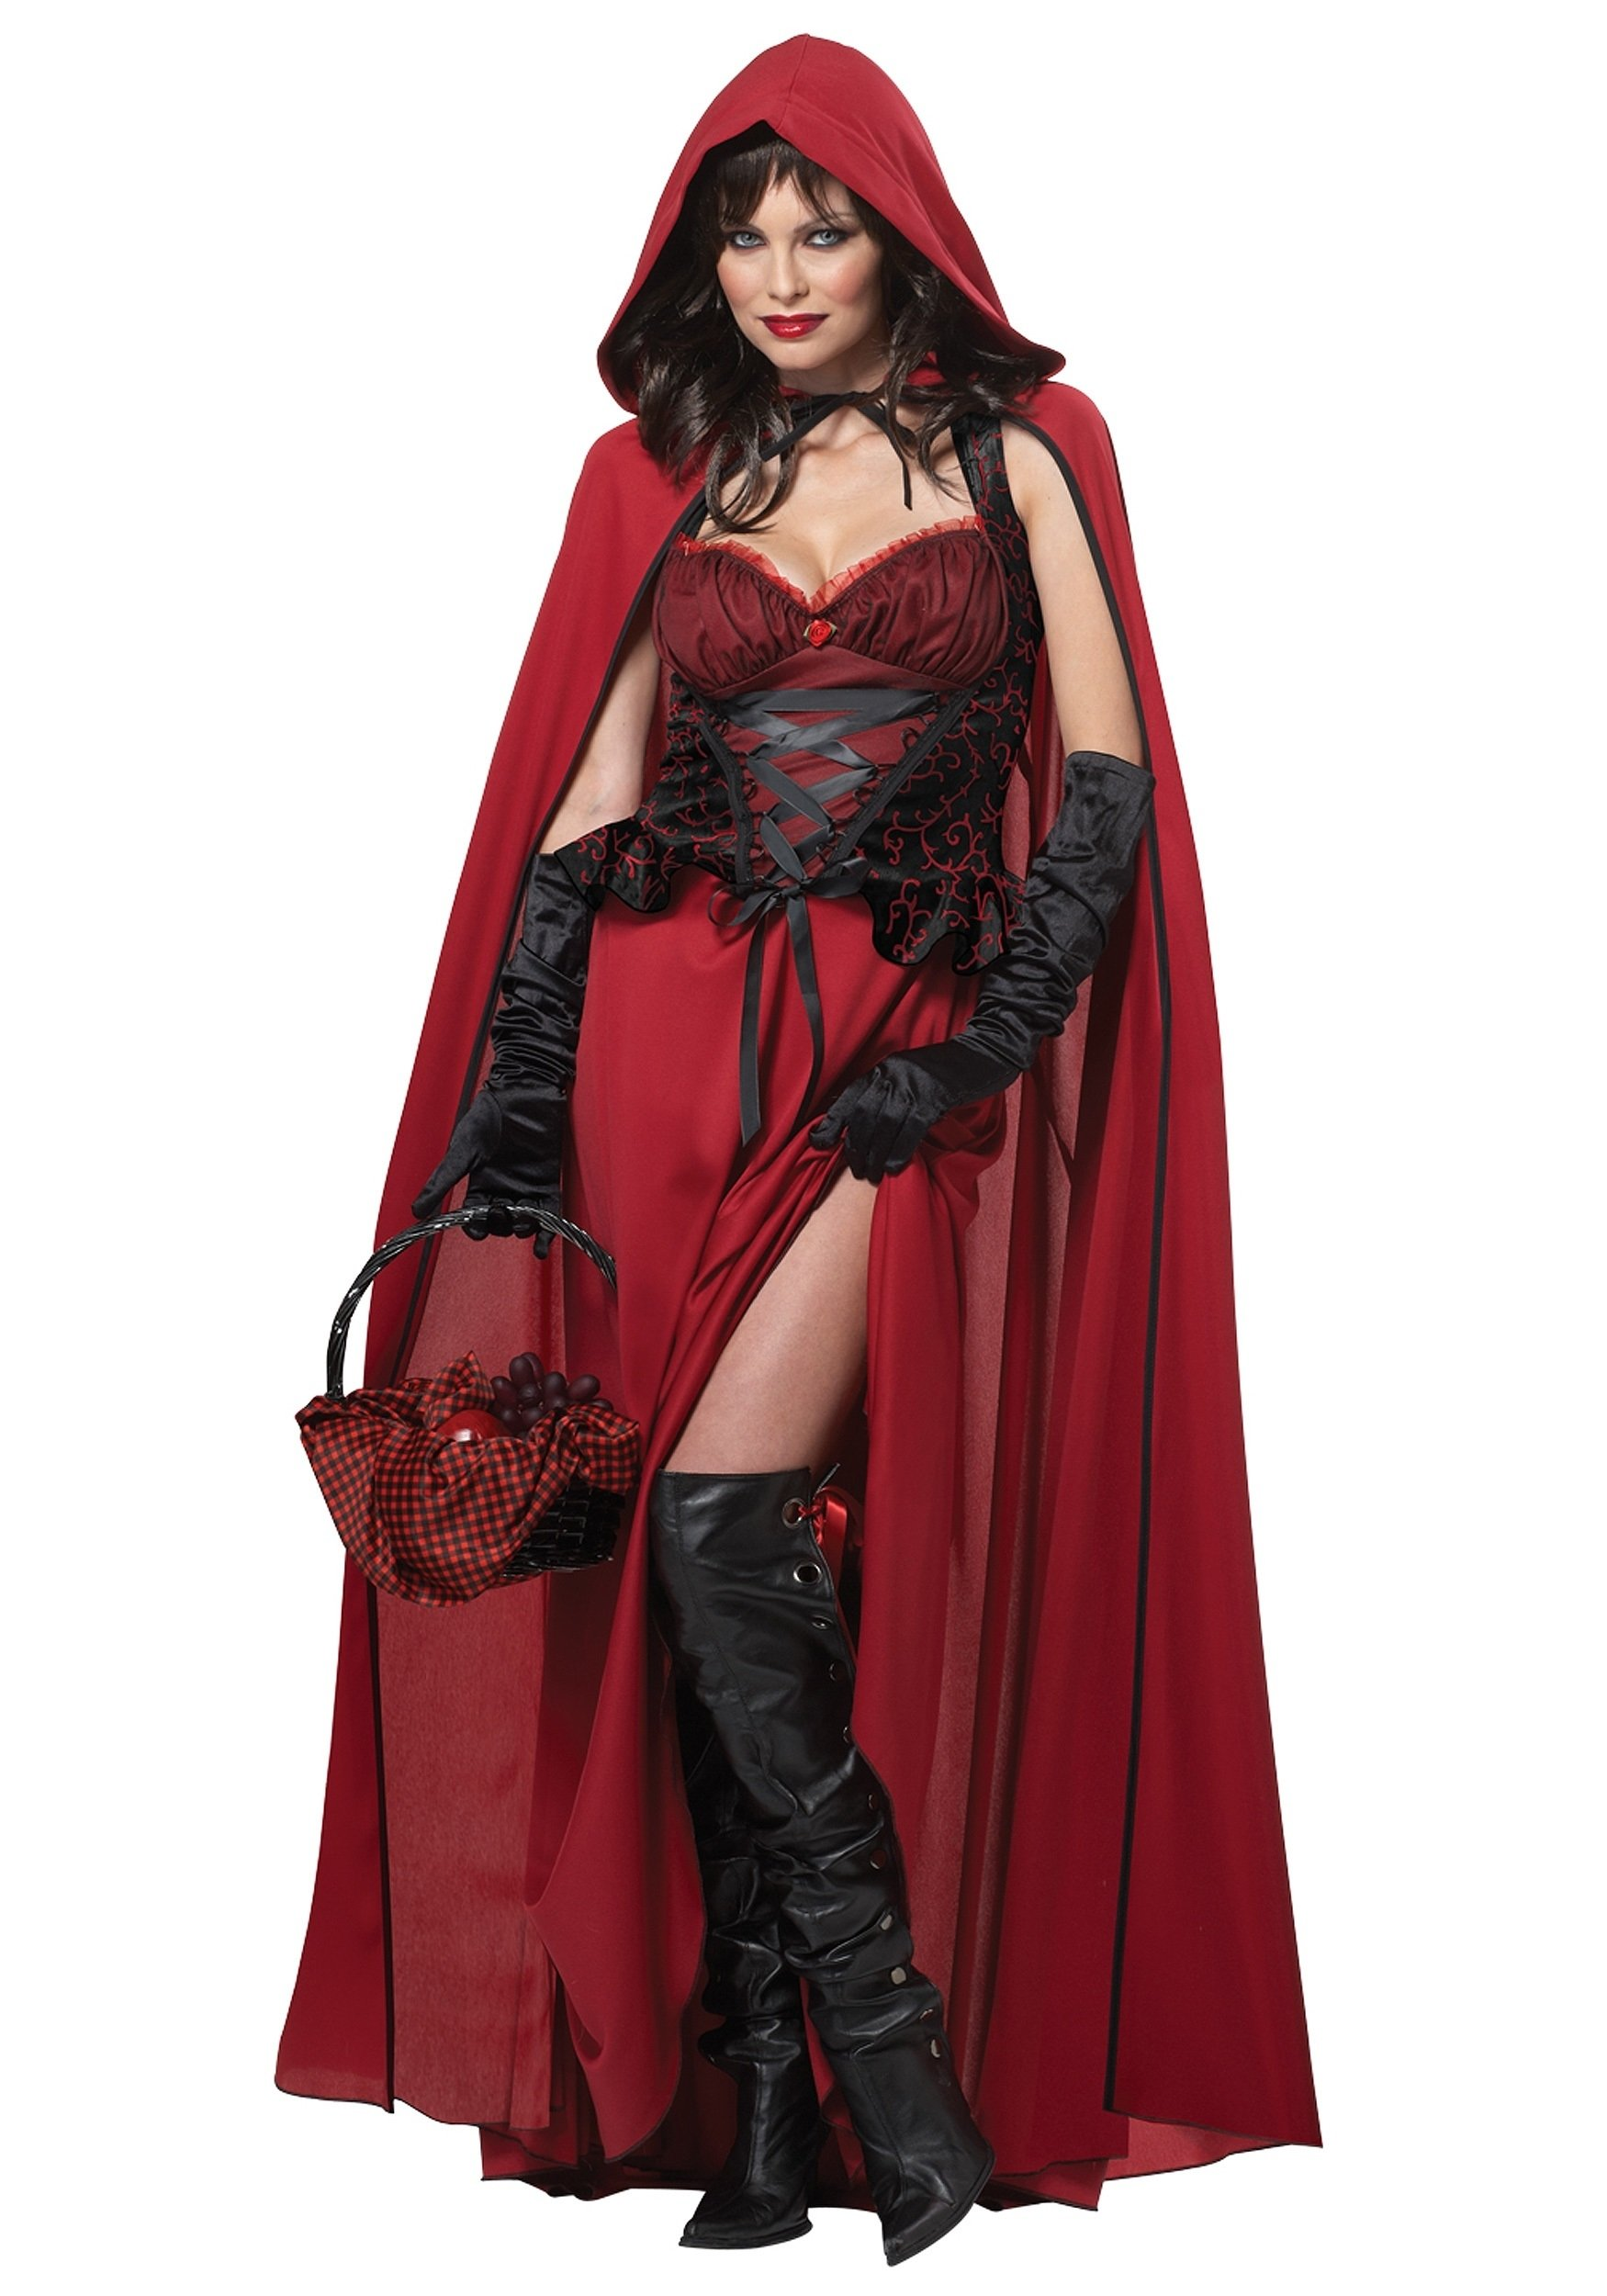 10 Trendy Red Riding Hood Costume Ideas womens dark red riding hood costume 2020